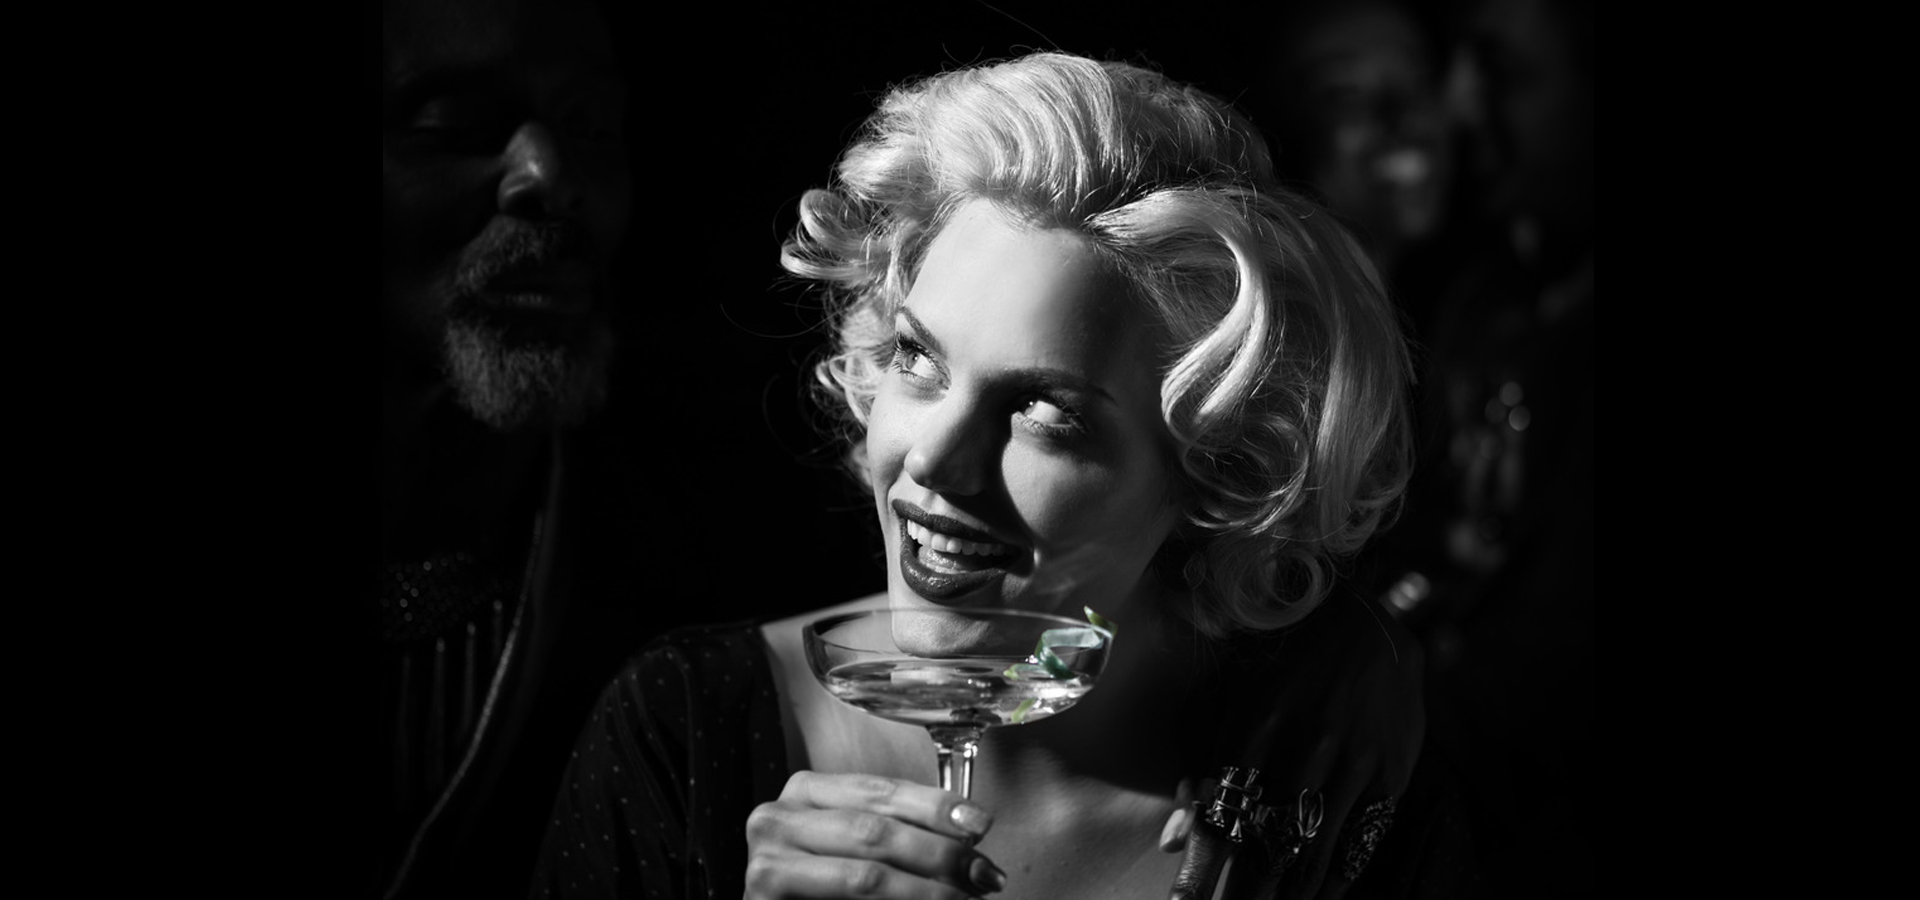 Marilyn drinking Martini